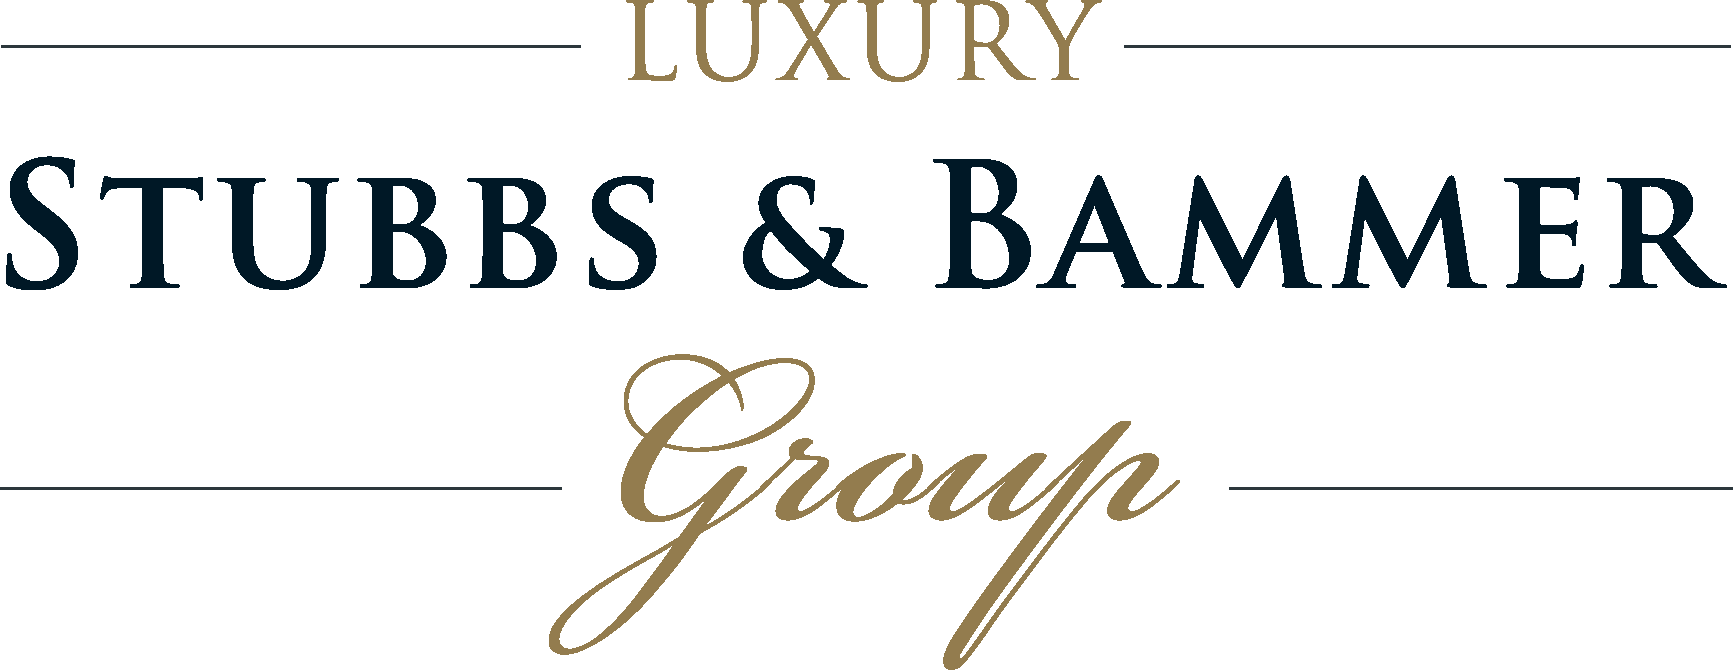 Stubbs & Bammer Luxury Group at First Team Real Estate logo